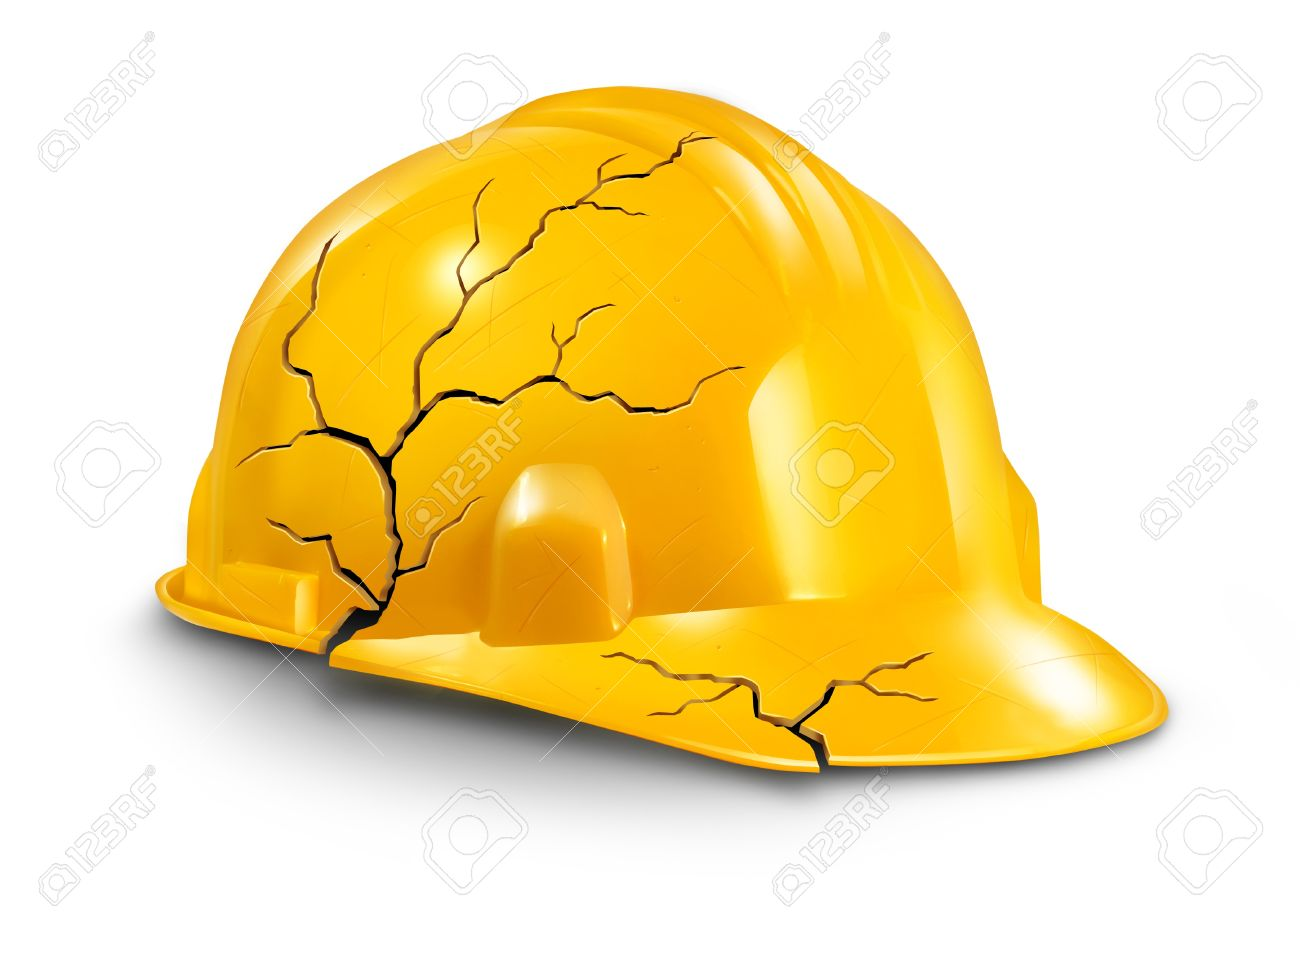 Work accident and health hazards on the job as a broken cracked yellow hardhat helmet as a symbol of working injury and insurance claims from physical damage and pain to the worker Stock Photo - 17811632